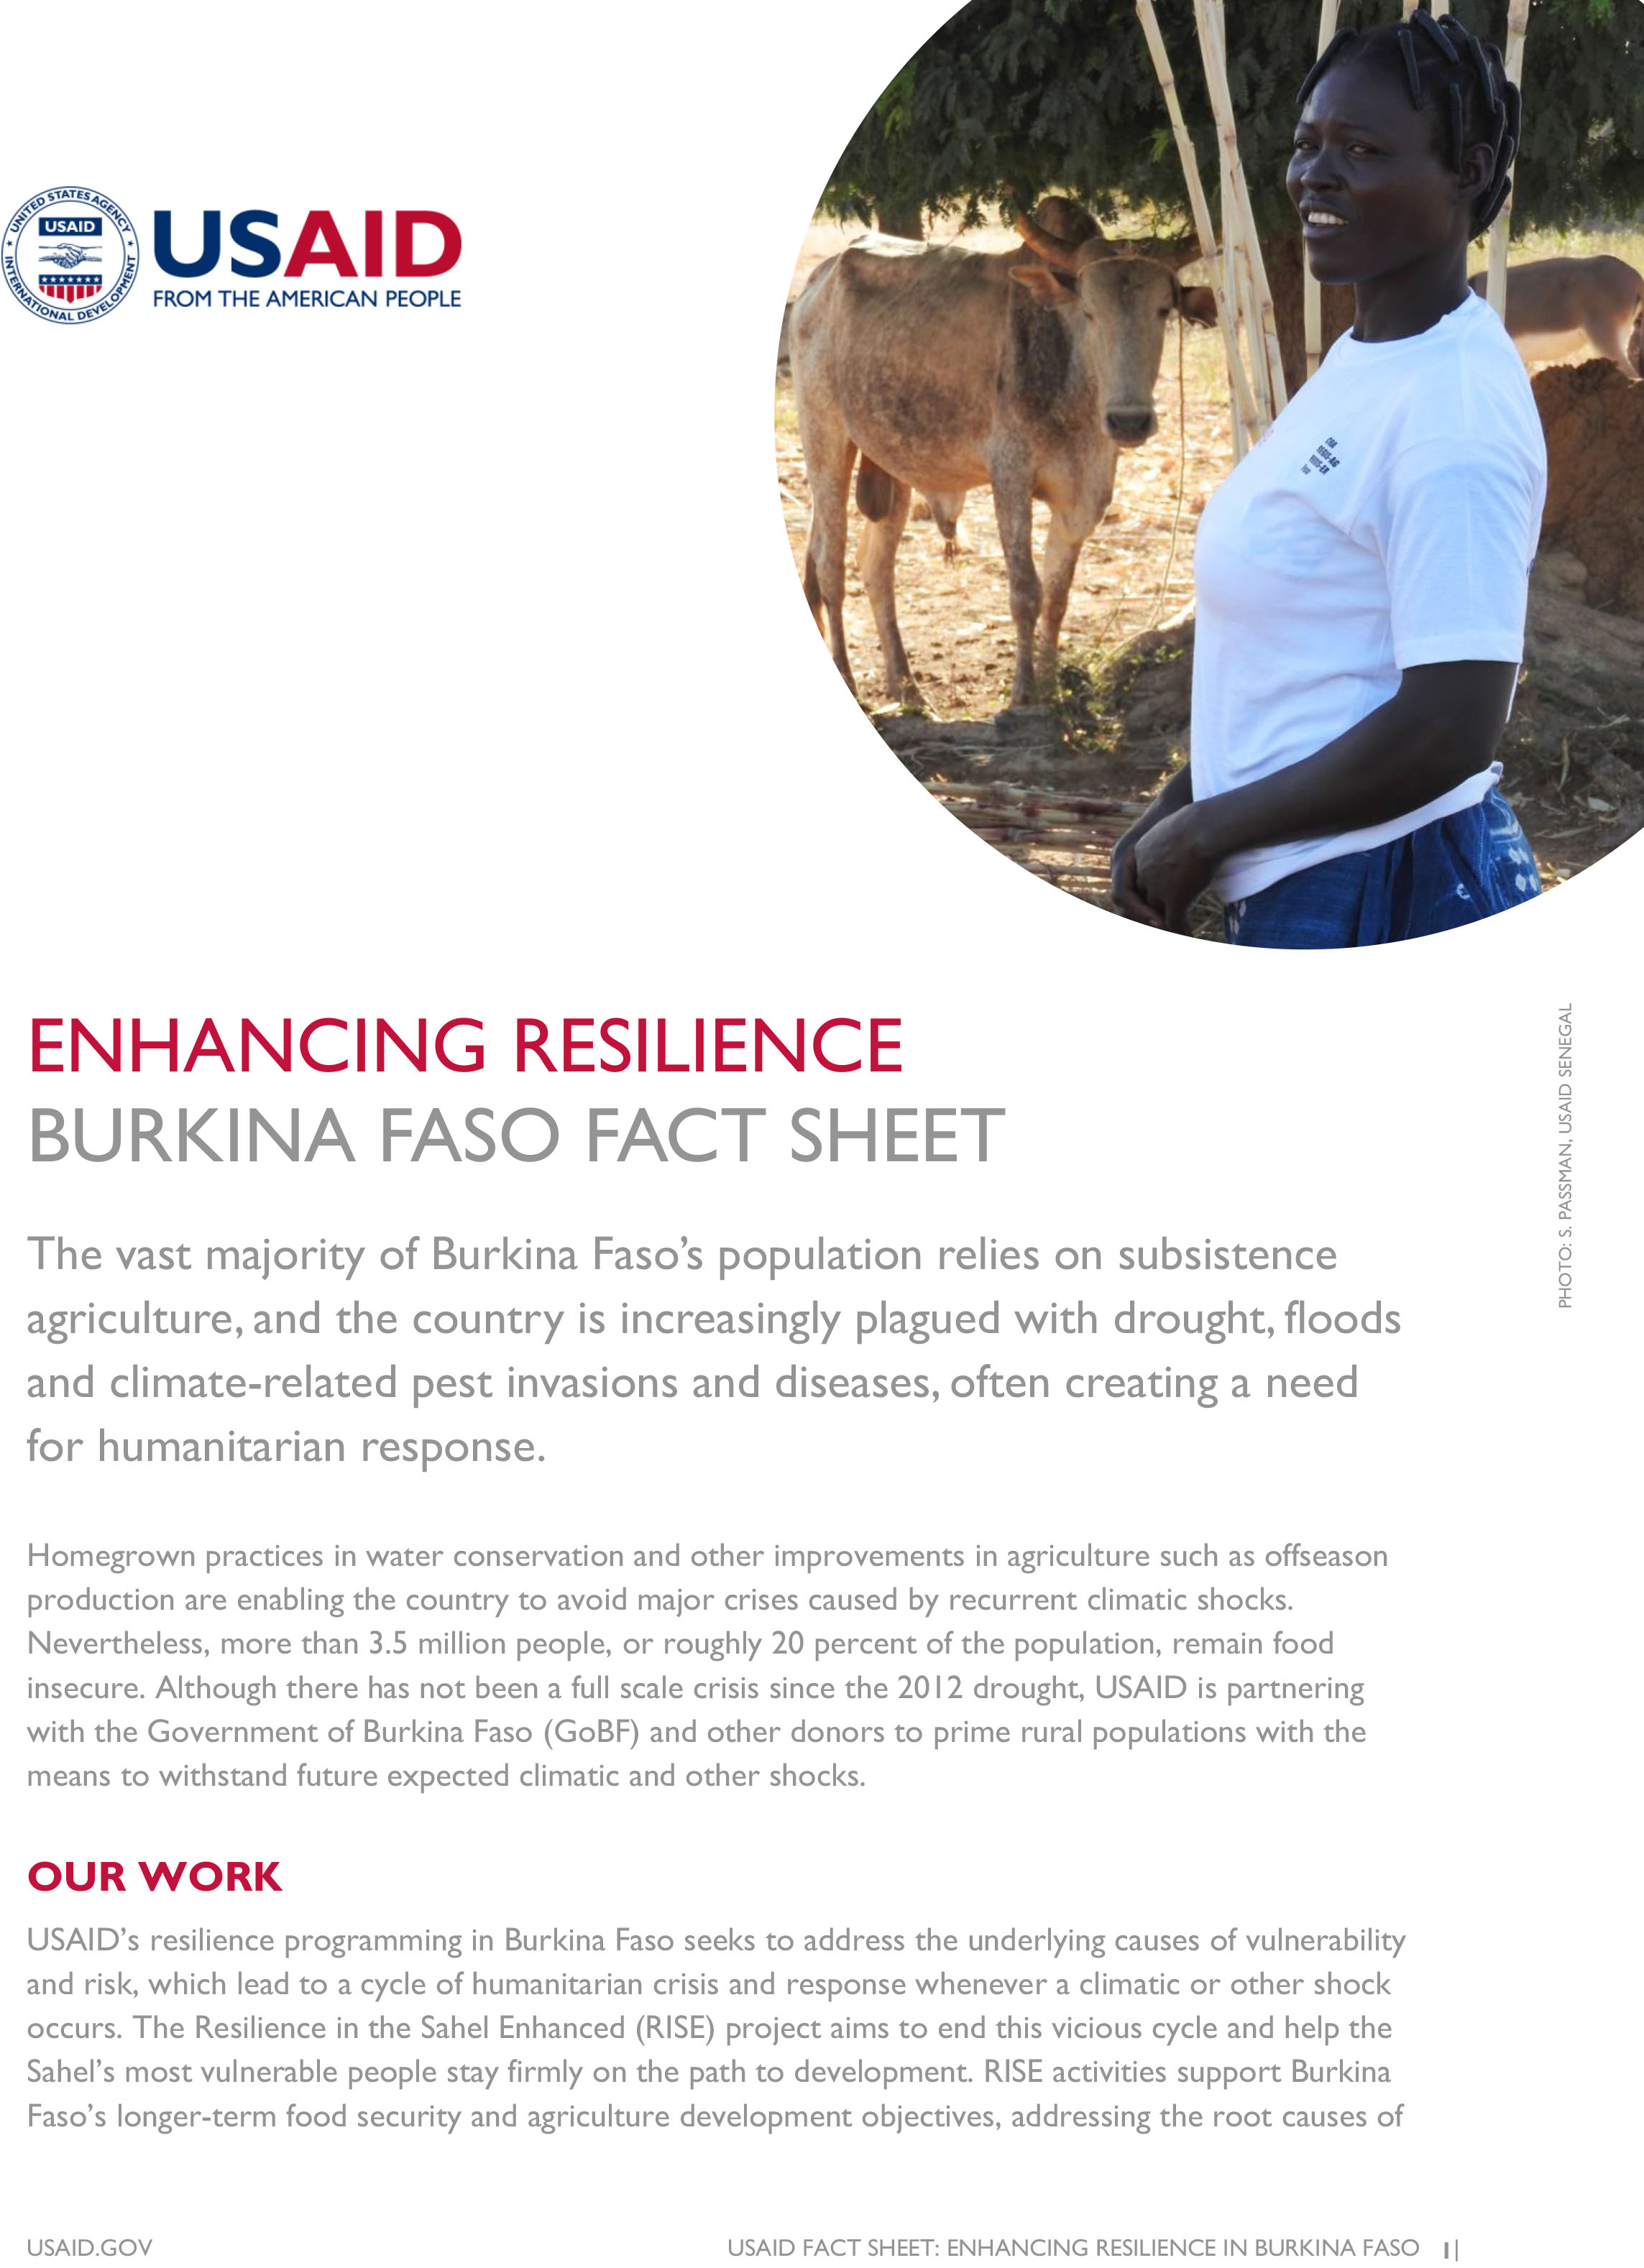 Burkina Faso Fact Sheet-Enhancing Resilience